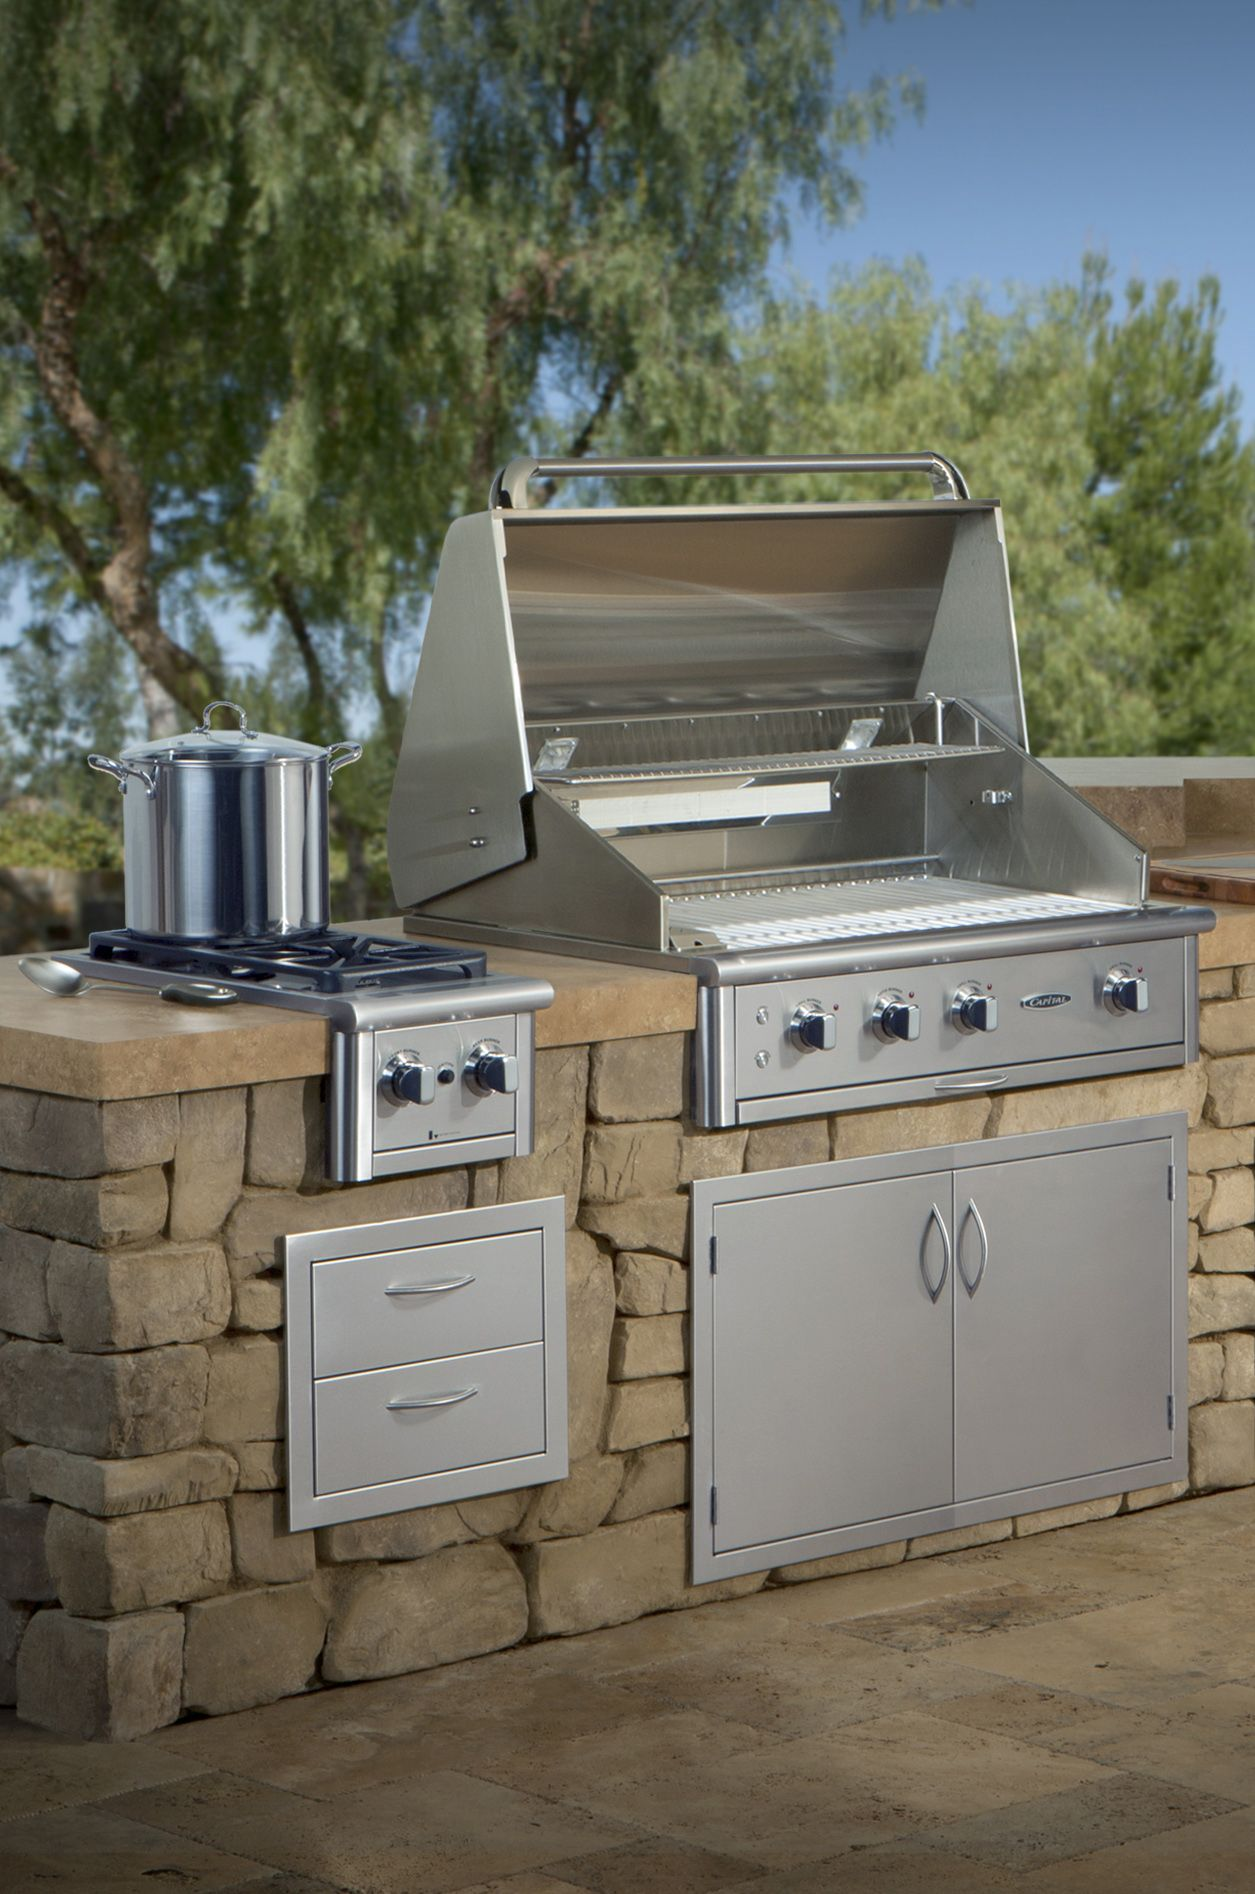 Precision Series 36 Built In Grill Built In Grill Grilling Outdoor Grill Accessories